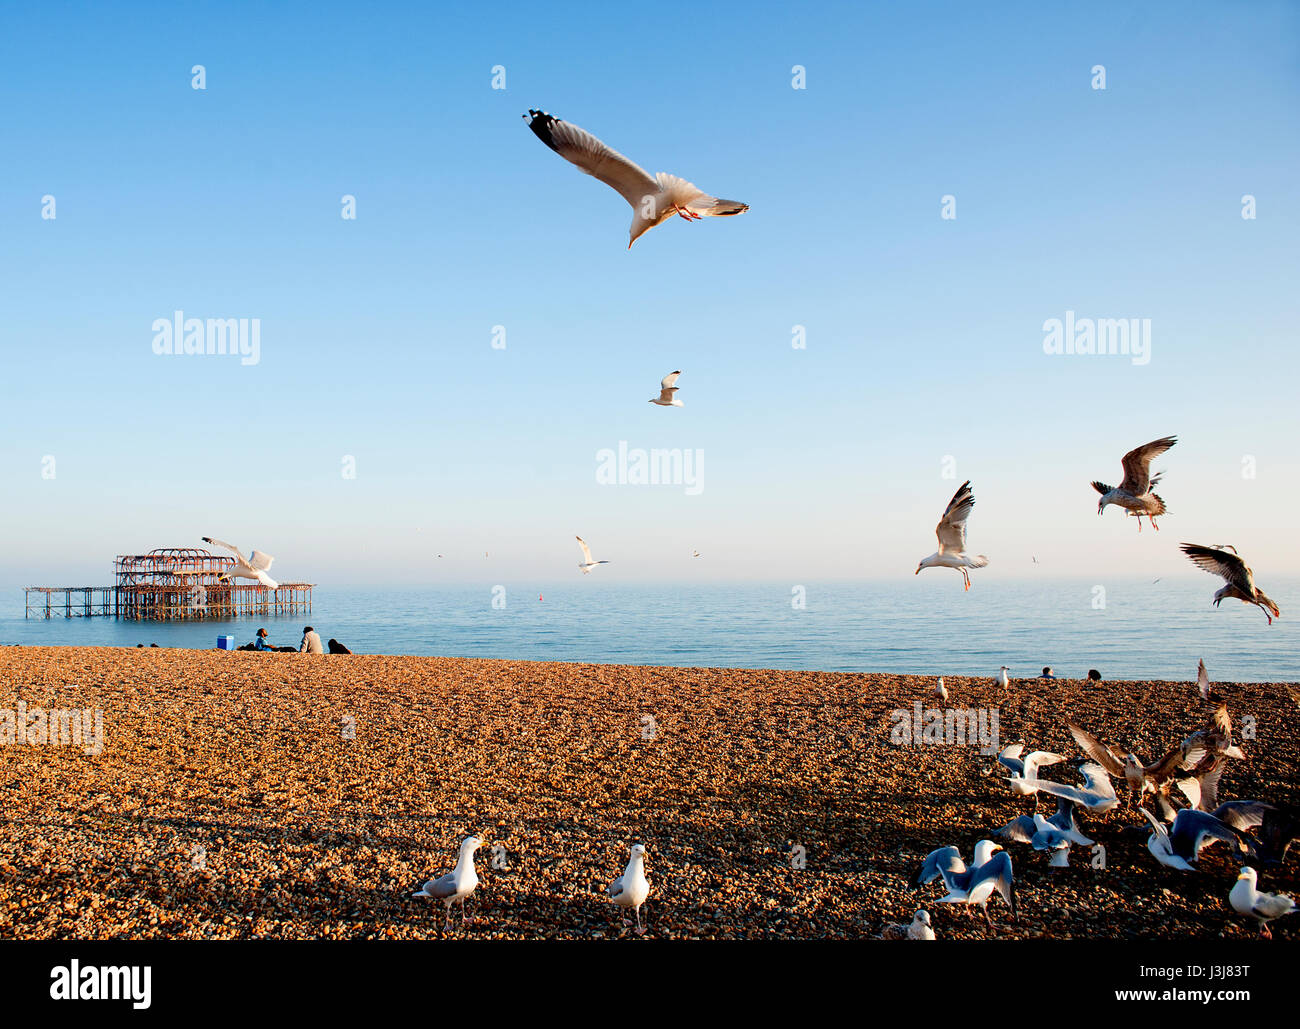 A flock of seagulls flies over Brighton beach on the south coast of England with the ruins of the famous West Pier - Stock Image